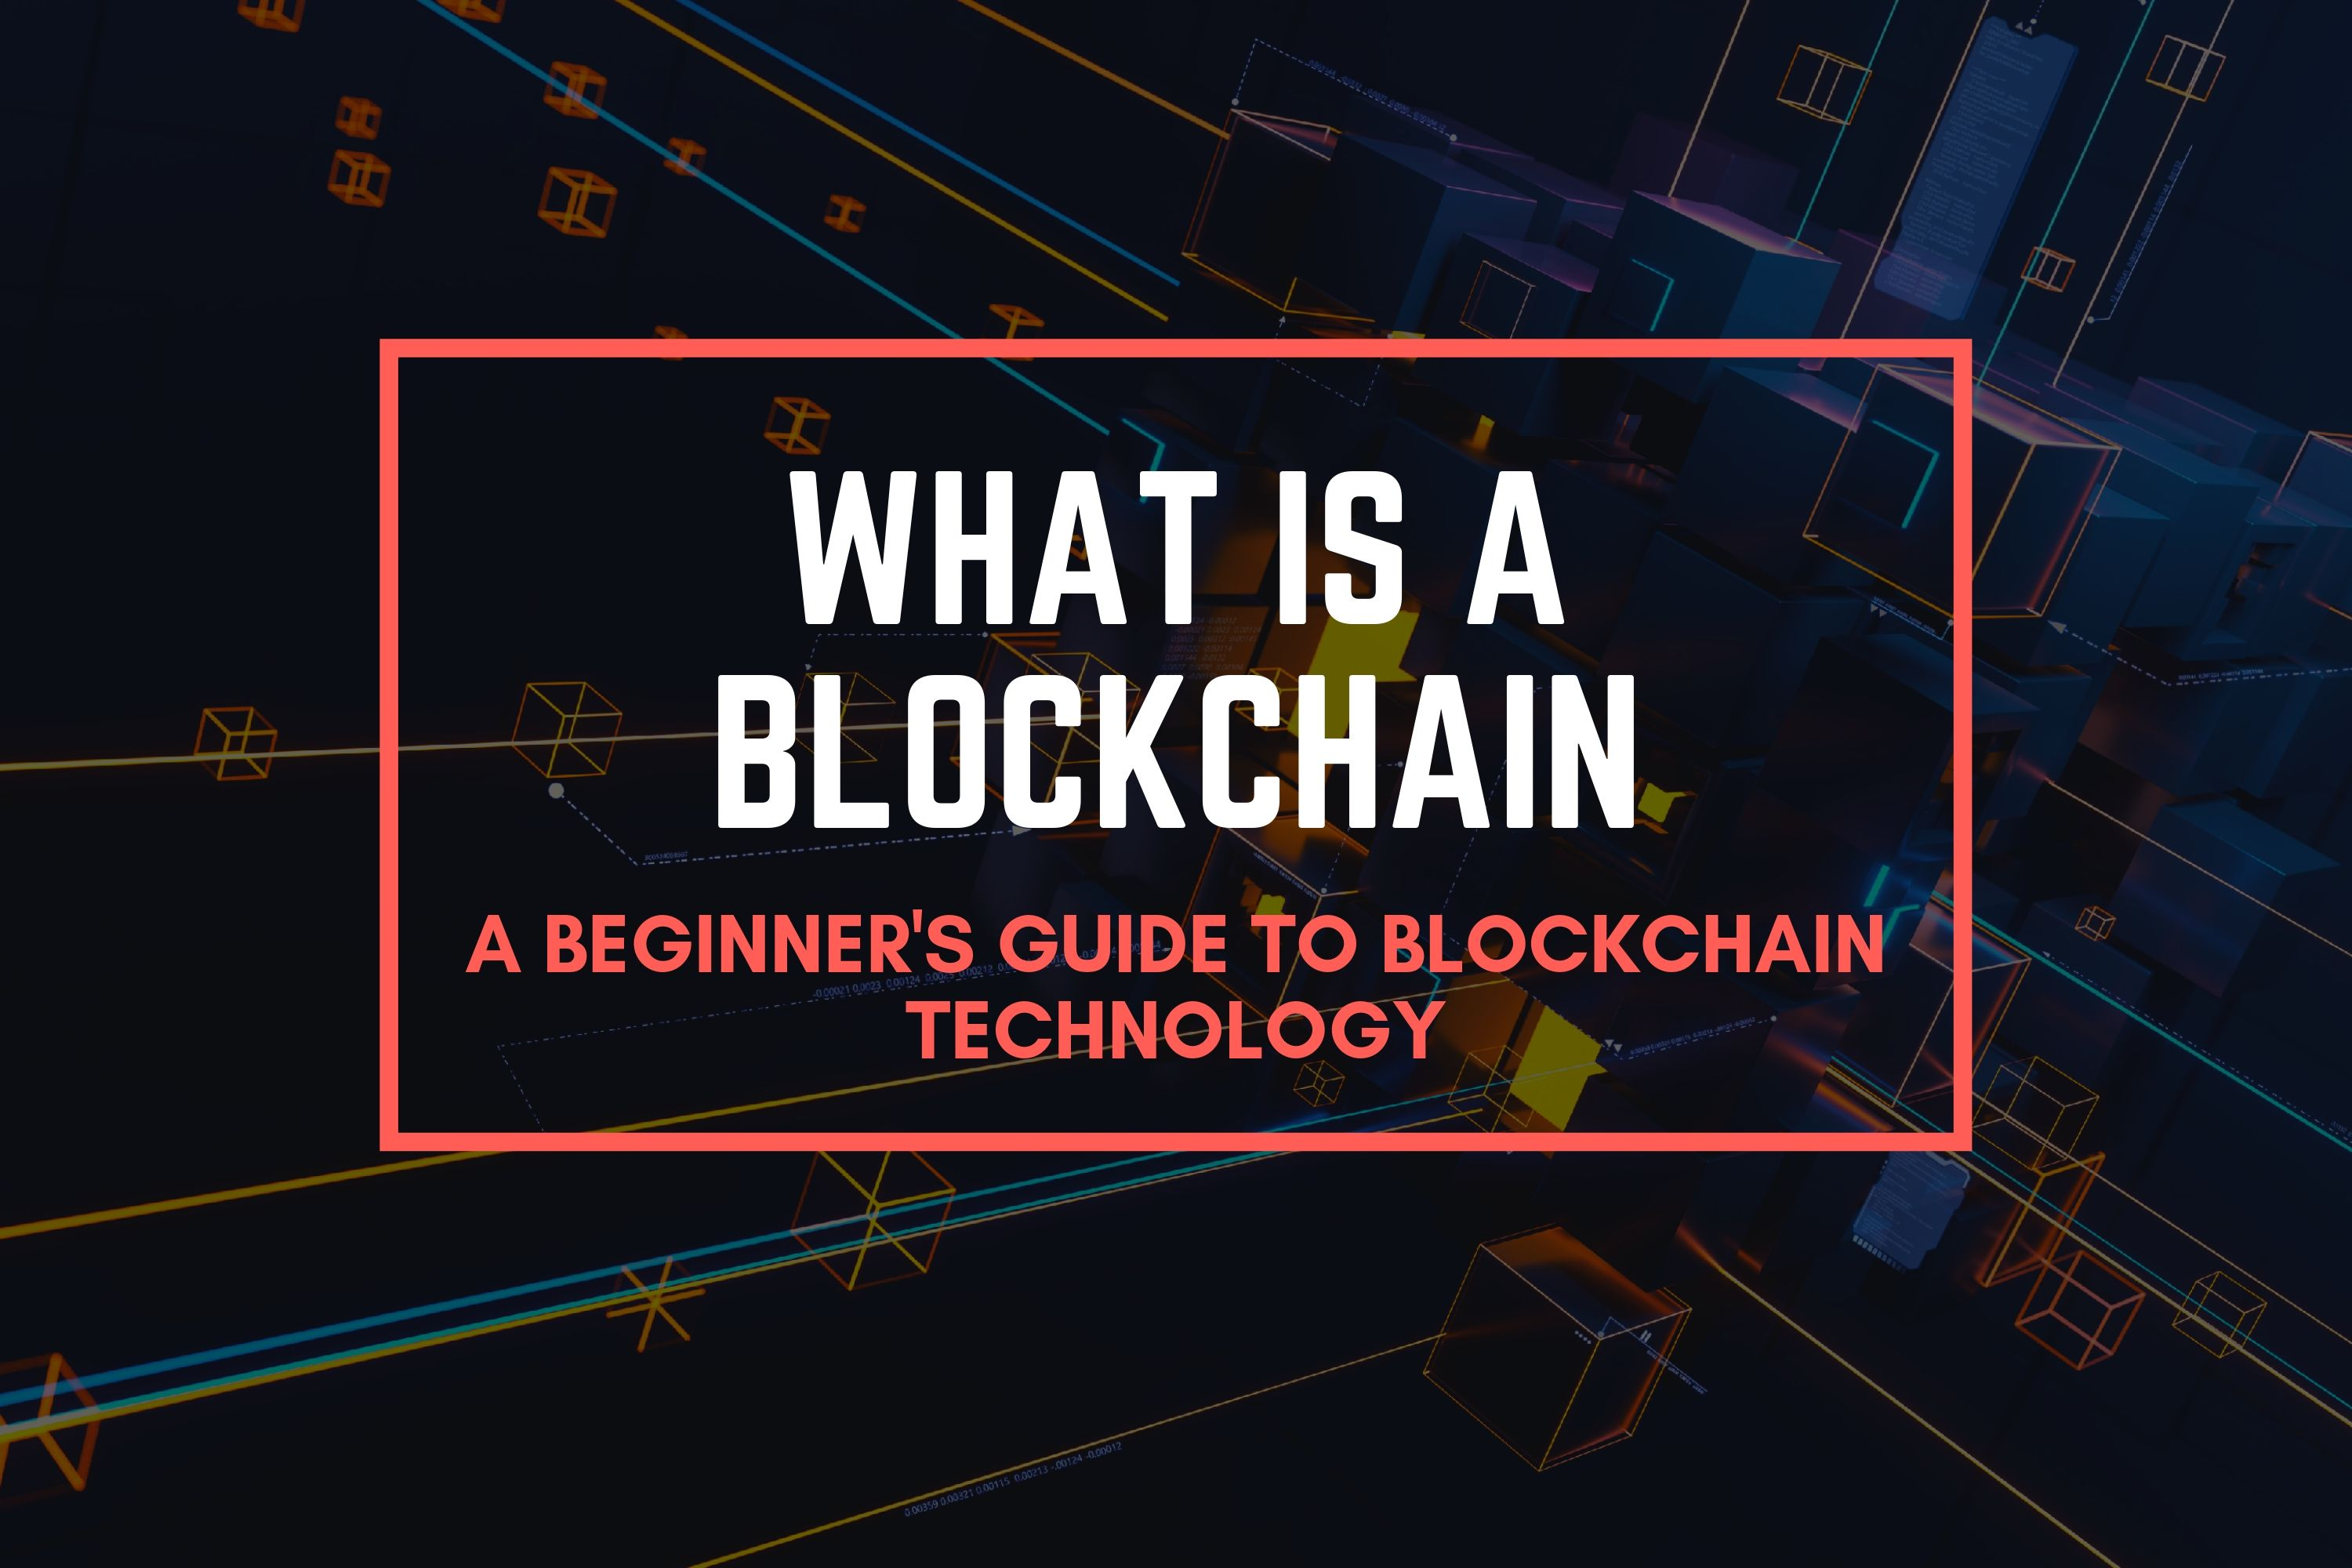 what is a blockchain. Beginner's guide to blockchain technologies